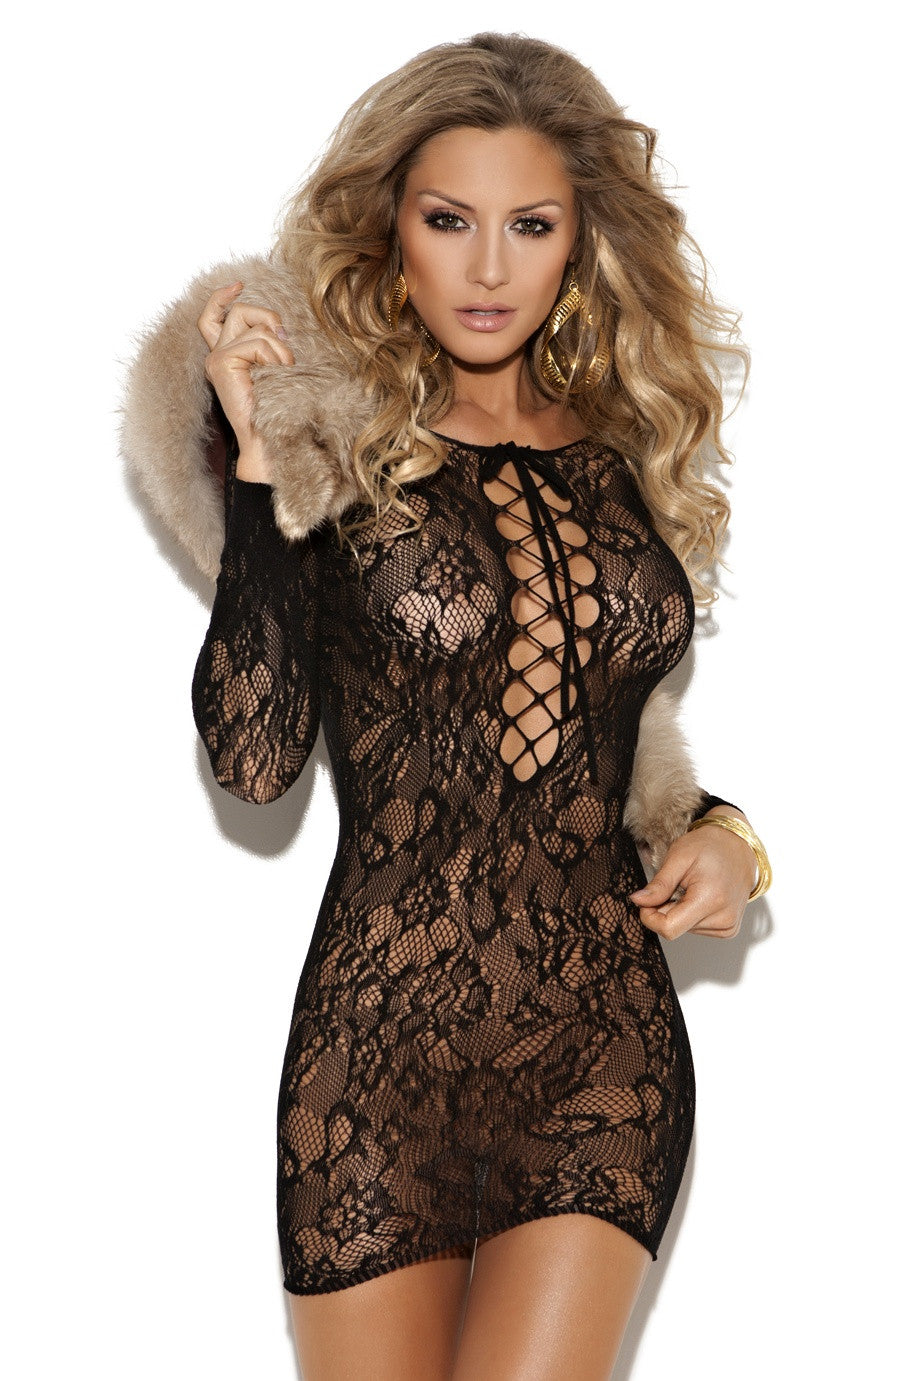 EM-8799 Long sleeve lace mini dress - Sexylingerieland  - 1